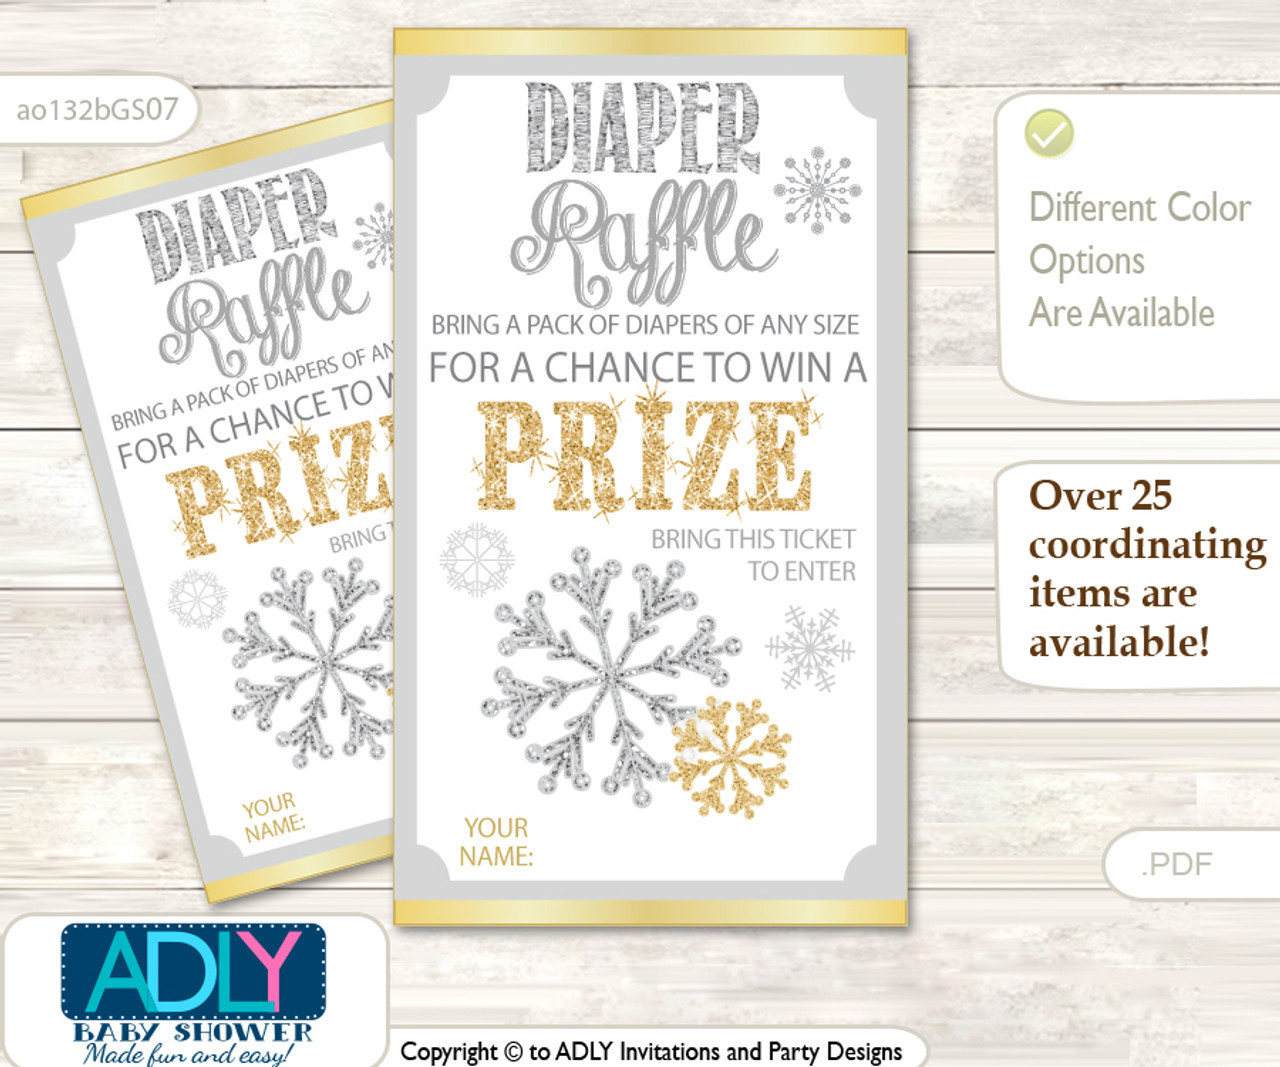 picture regarding Printable Tickets called Impartial Snowflake Diaper Raffle Printable Tickets for Kid Shower, Gold, Gray